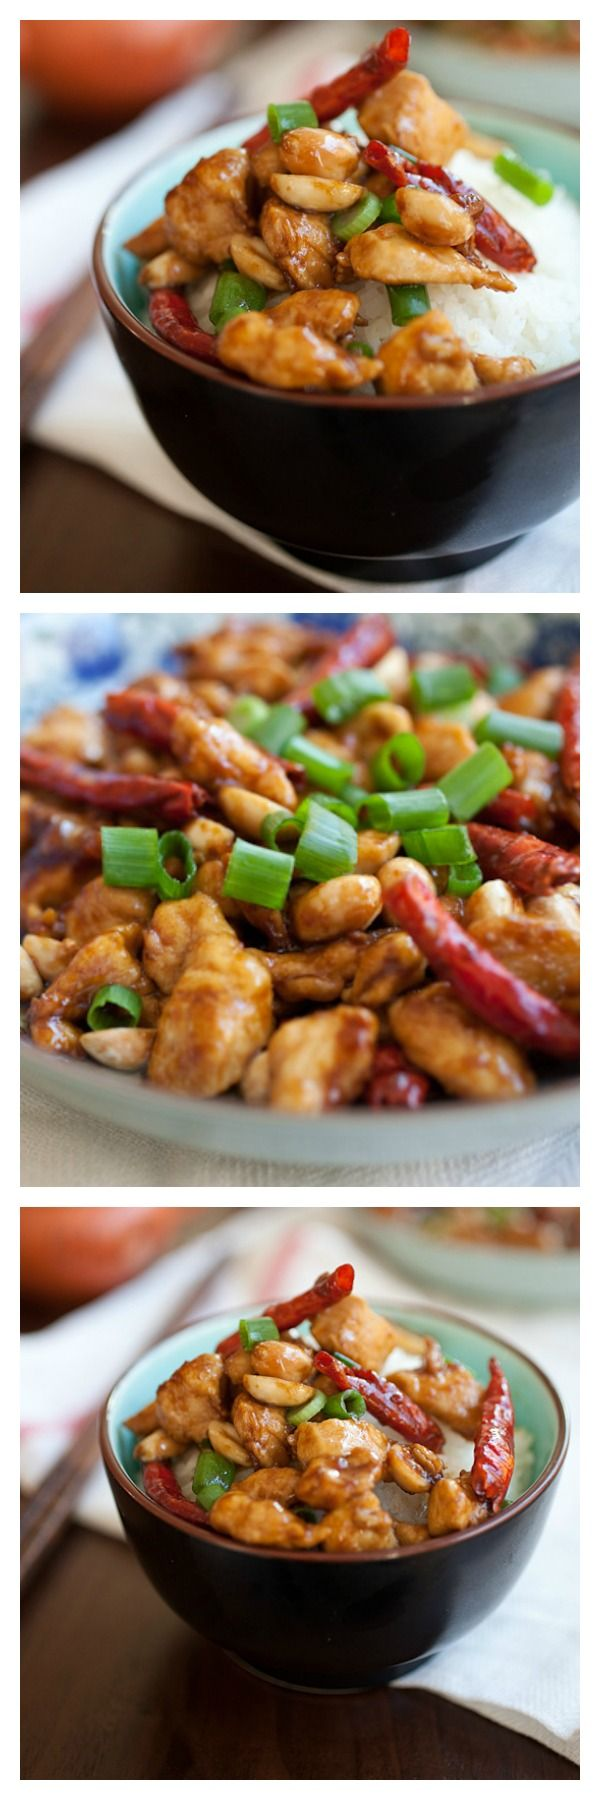 Kung Pao Chicken at home. You can make your favorite Chinese takeout with this easy, no-fuss, quick recipe | Follow @rasamalaysia for easy Asian recipes at home.